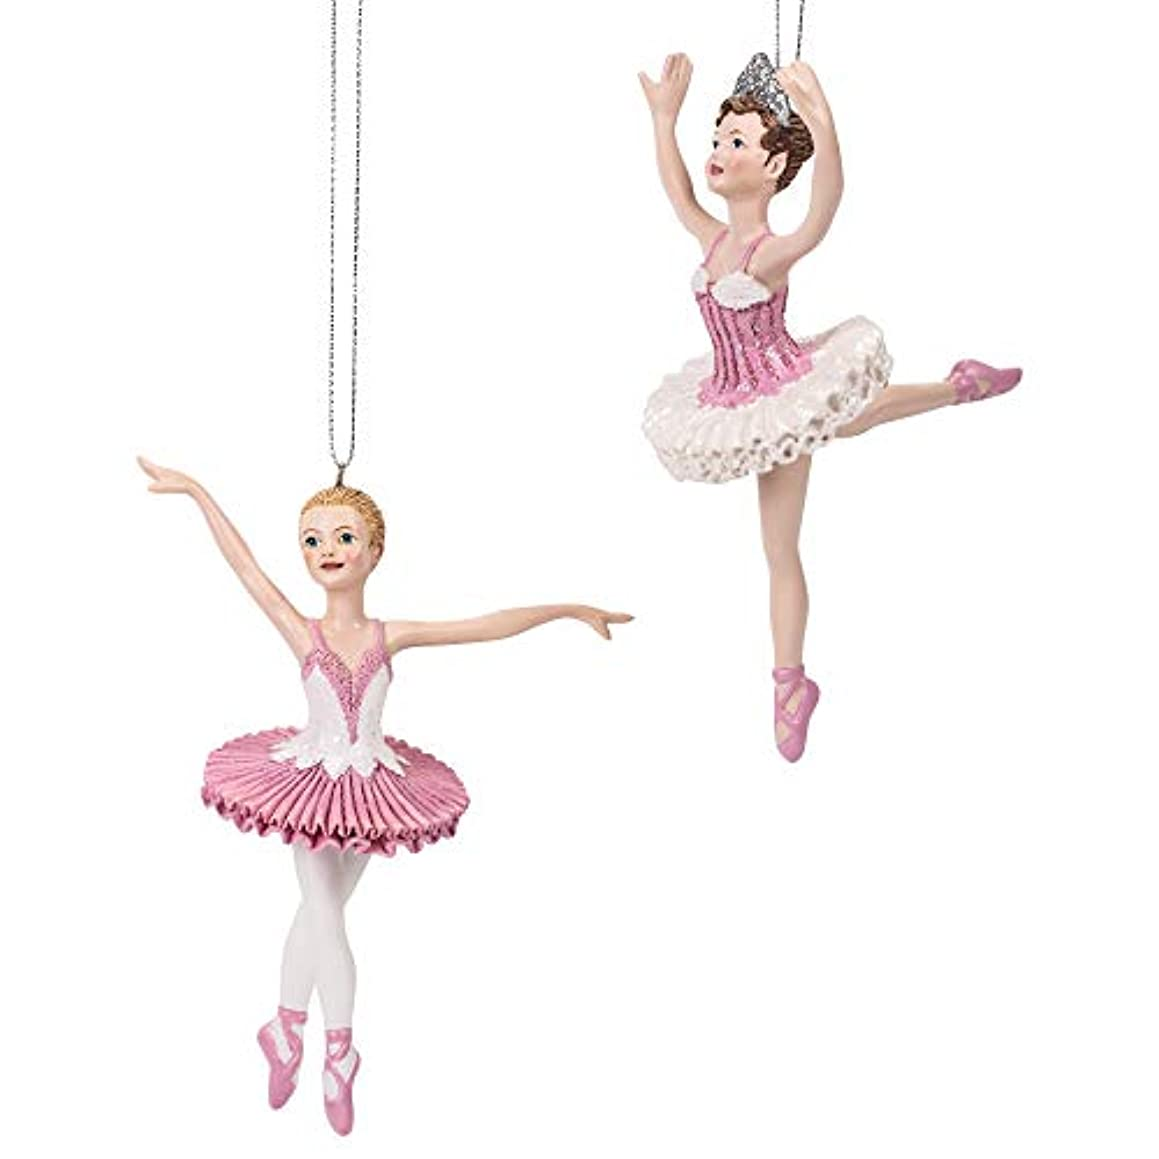 Midwest-CBK Ballerina Pretty Pink PVC and Rayon 7 x 5 Christmas Ornaments Set of 2